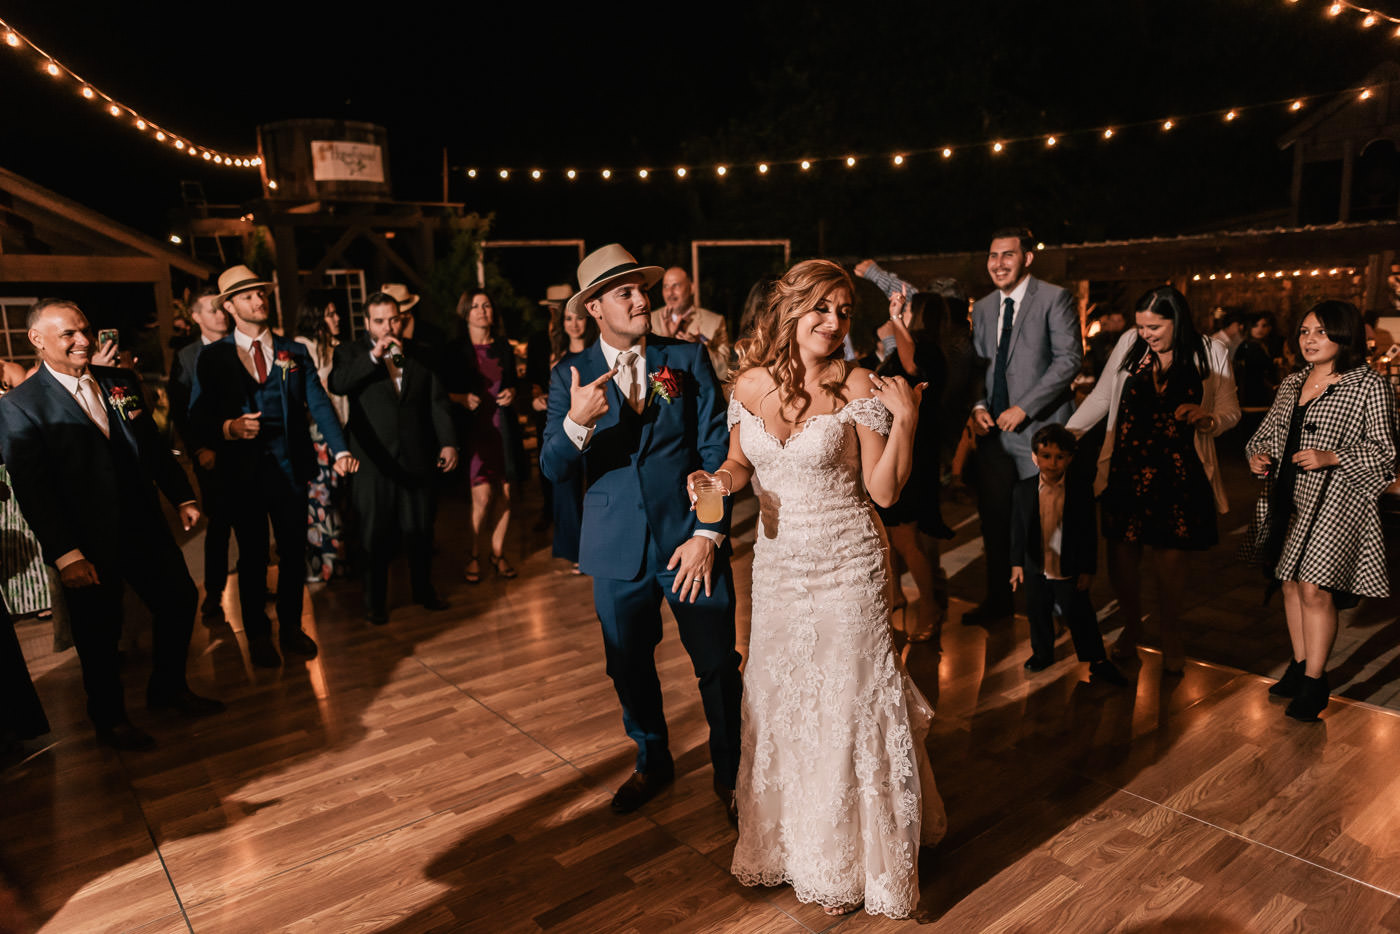 Bride and groom hit the dance floor after their ceremony.